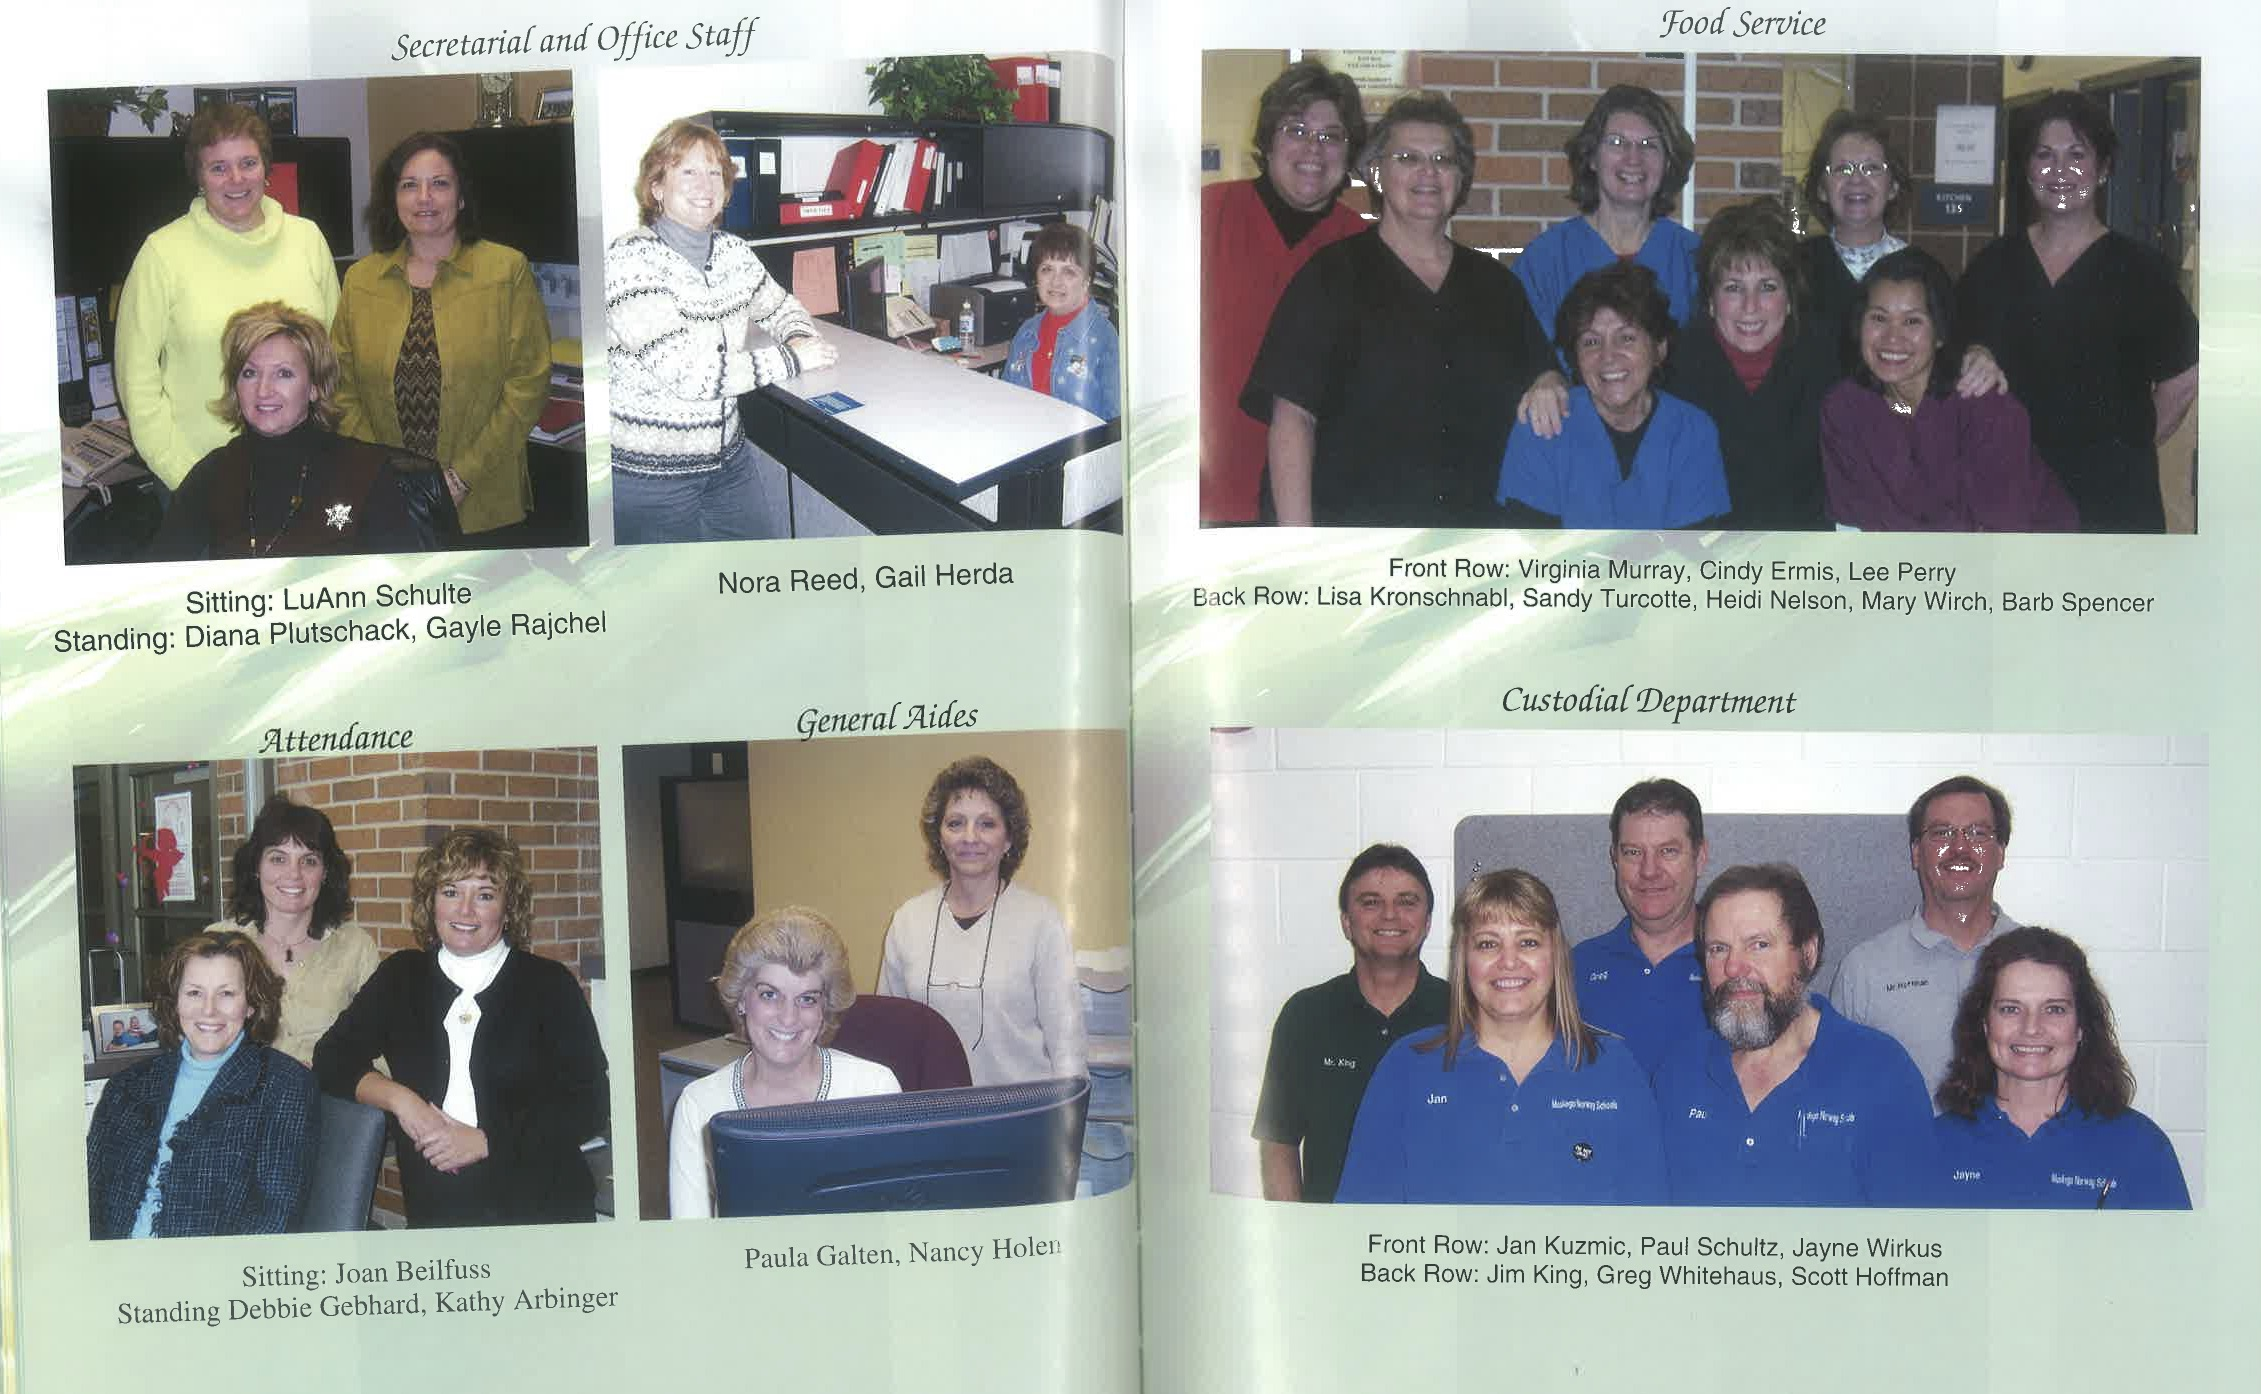 2007_Yearbook_54.jpg